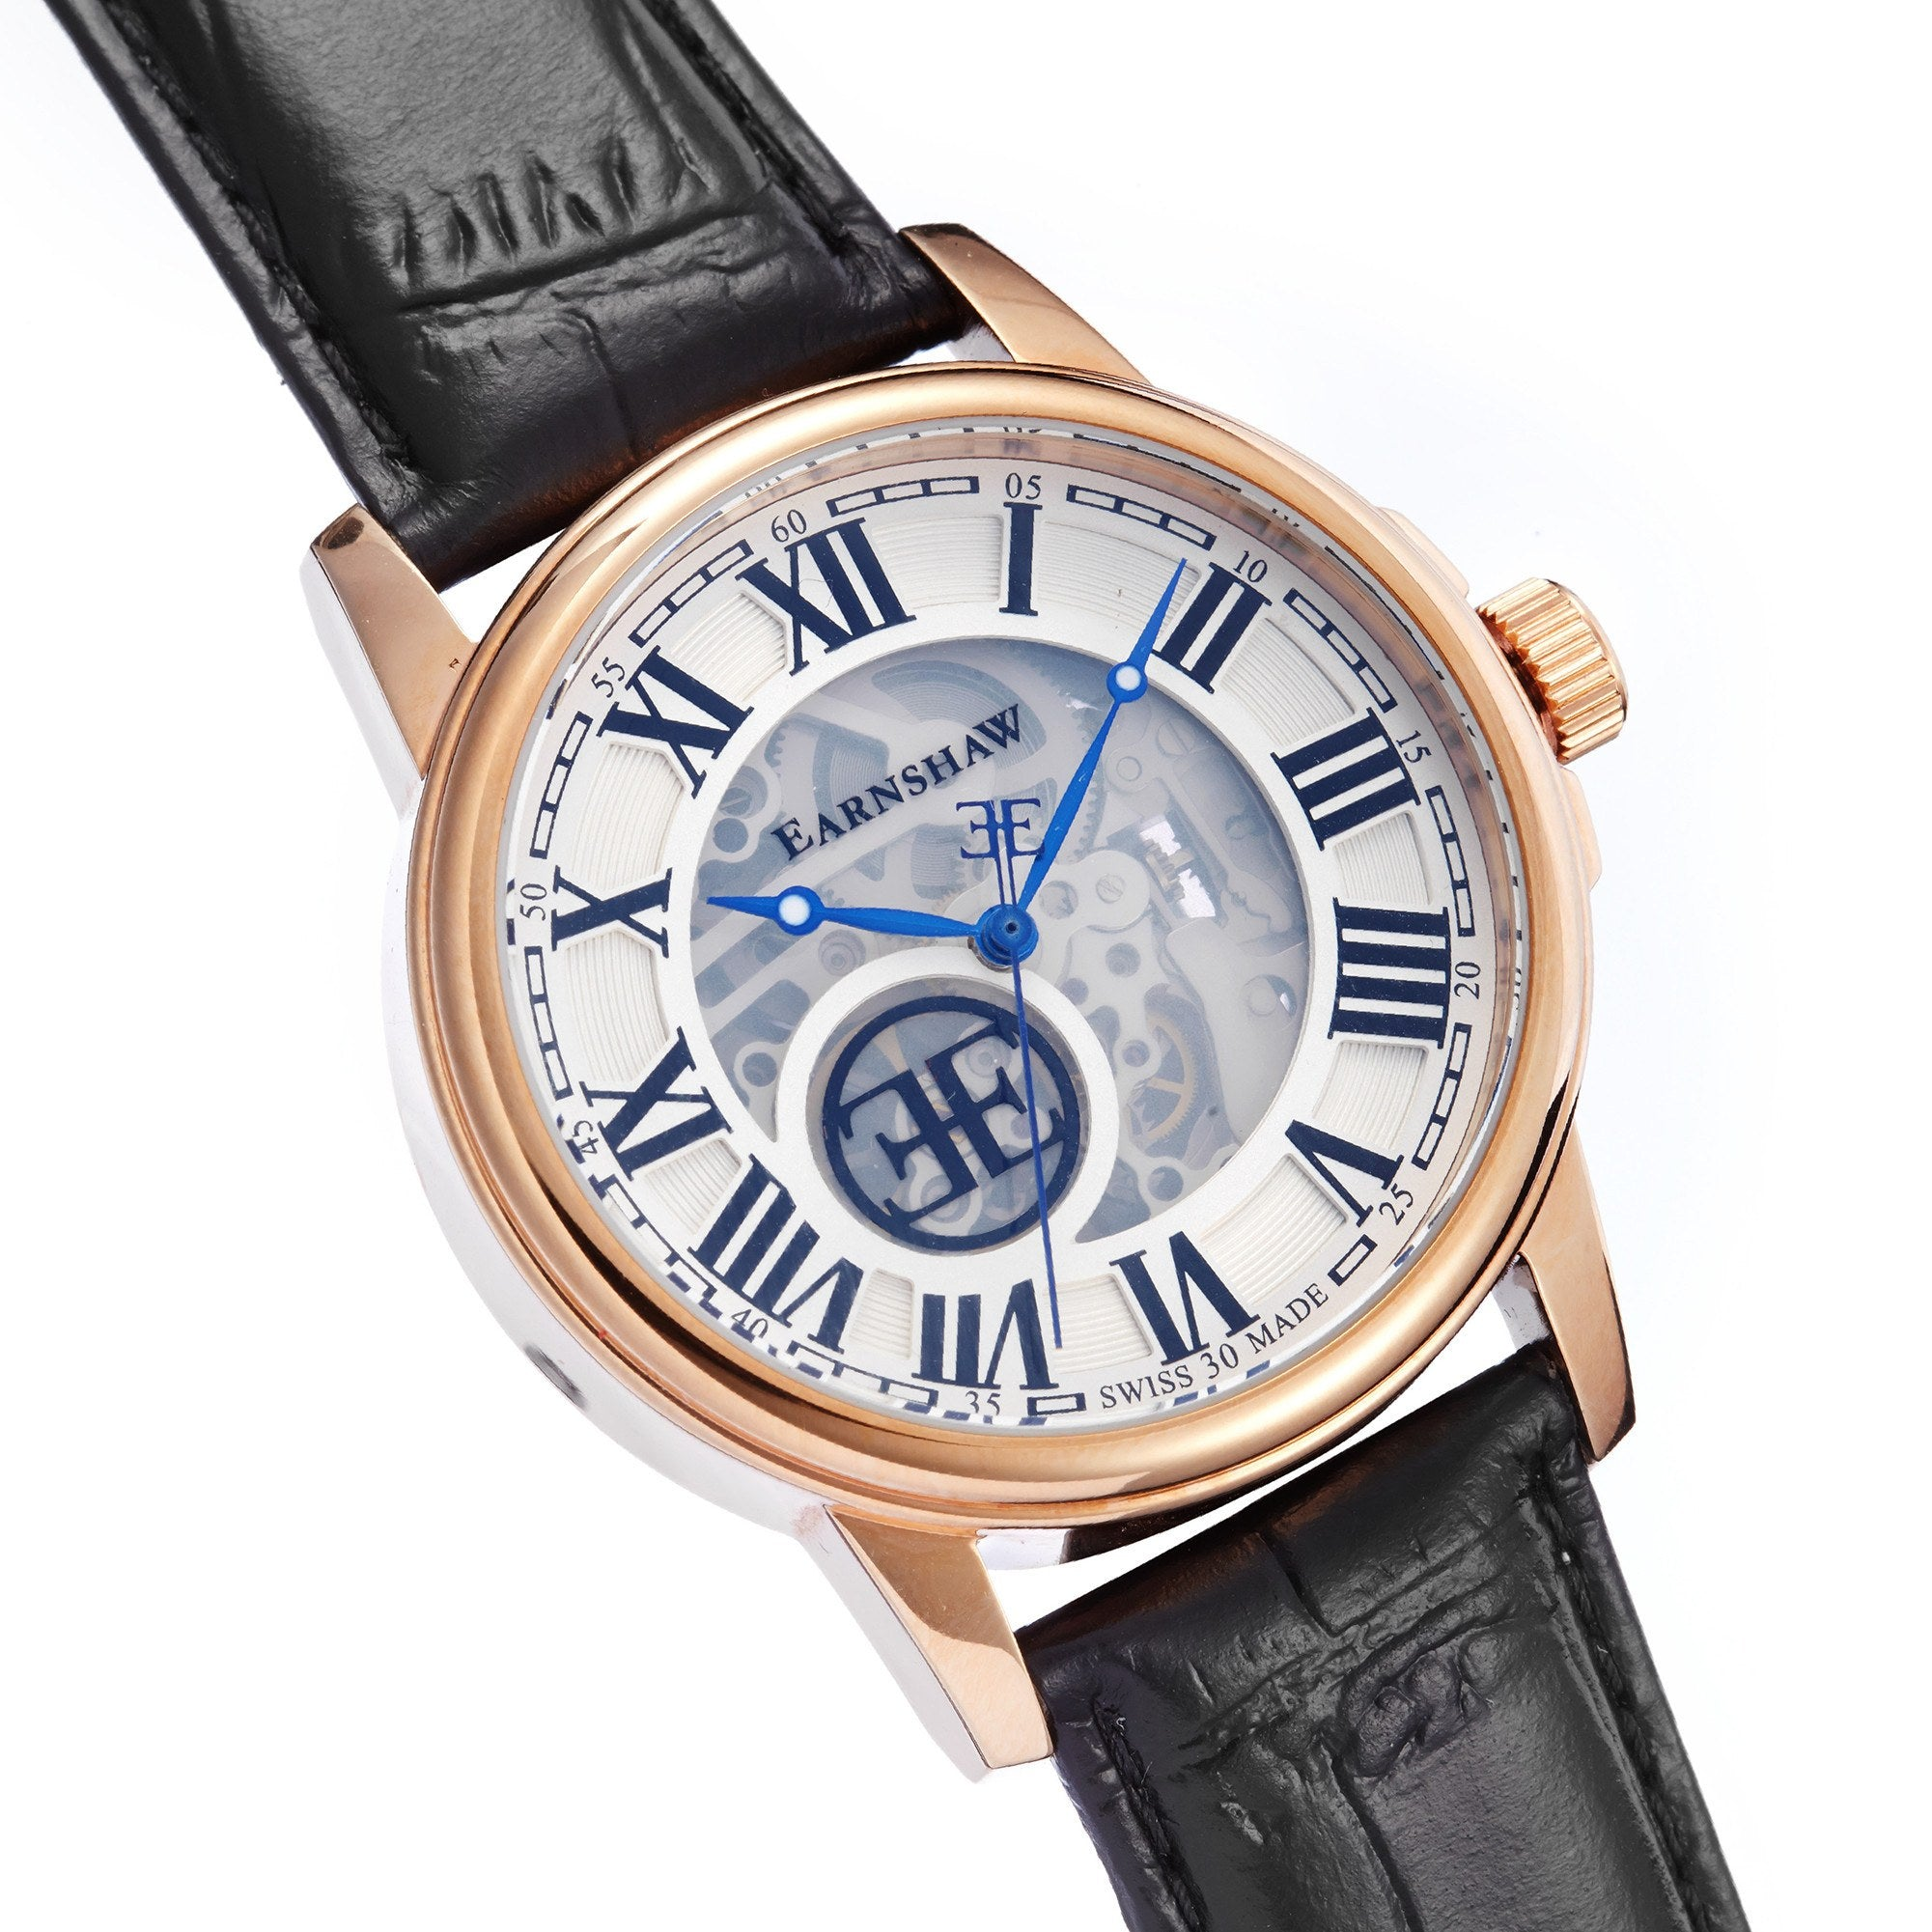 Thomas Earnshaw THOMAS EARNSHAW SWISS MADE Beagle Automatic Skeleton With Black Genuine Leather Strap ES-0028-02